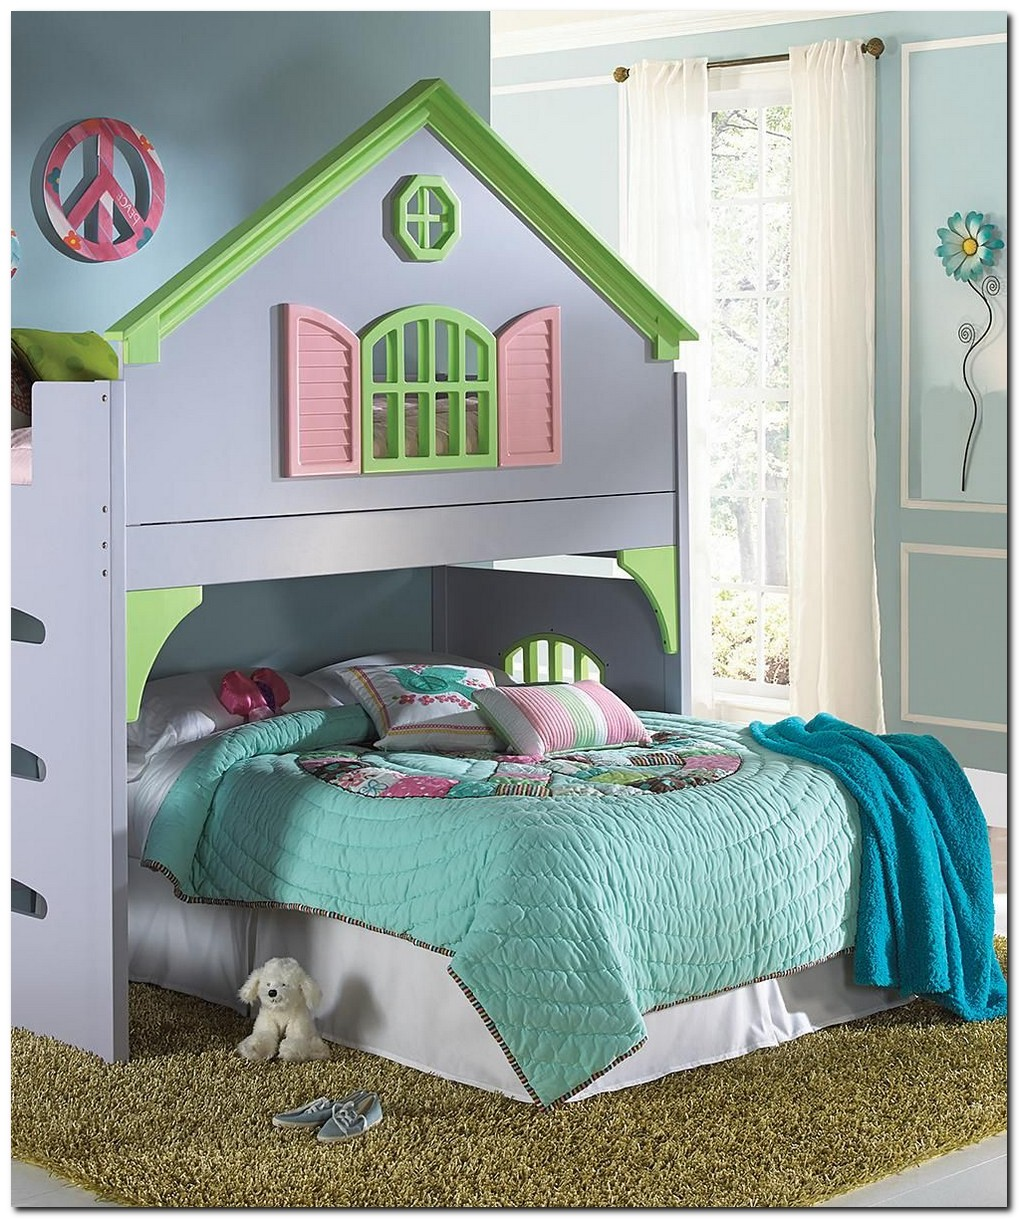 Beds for children choosing bunk beds for kids 18